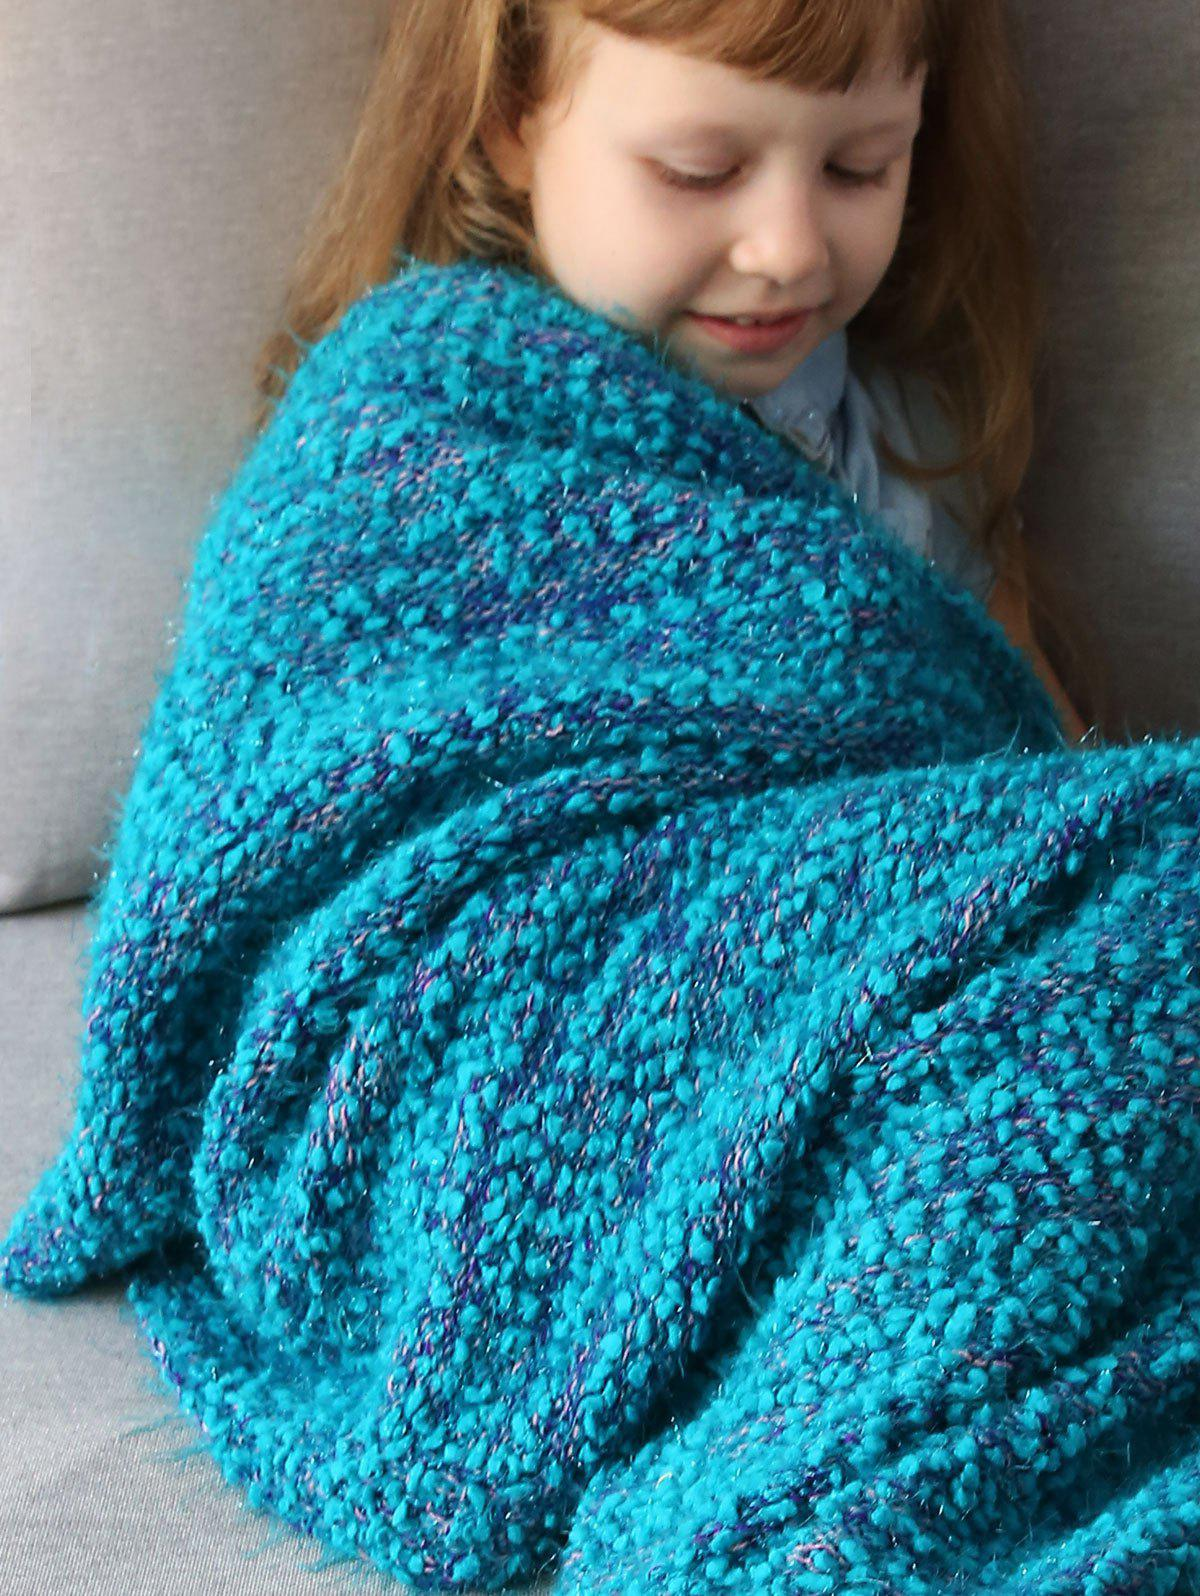 Imitation Shearling Crochet Knitted Mermaid Blanket Throw For Kids - OASIS